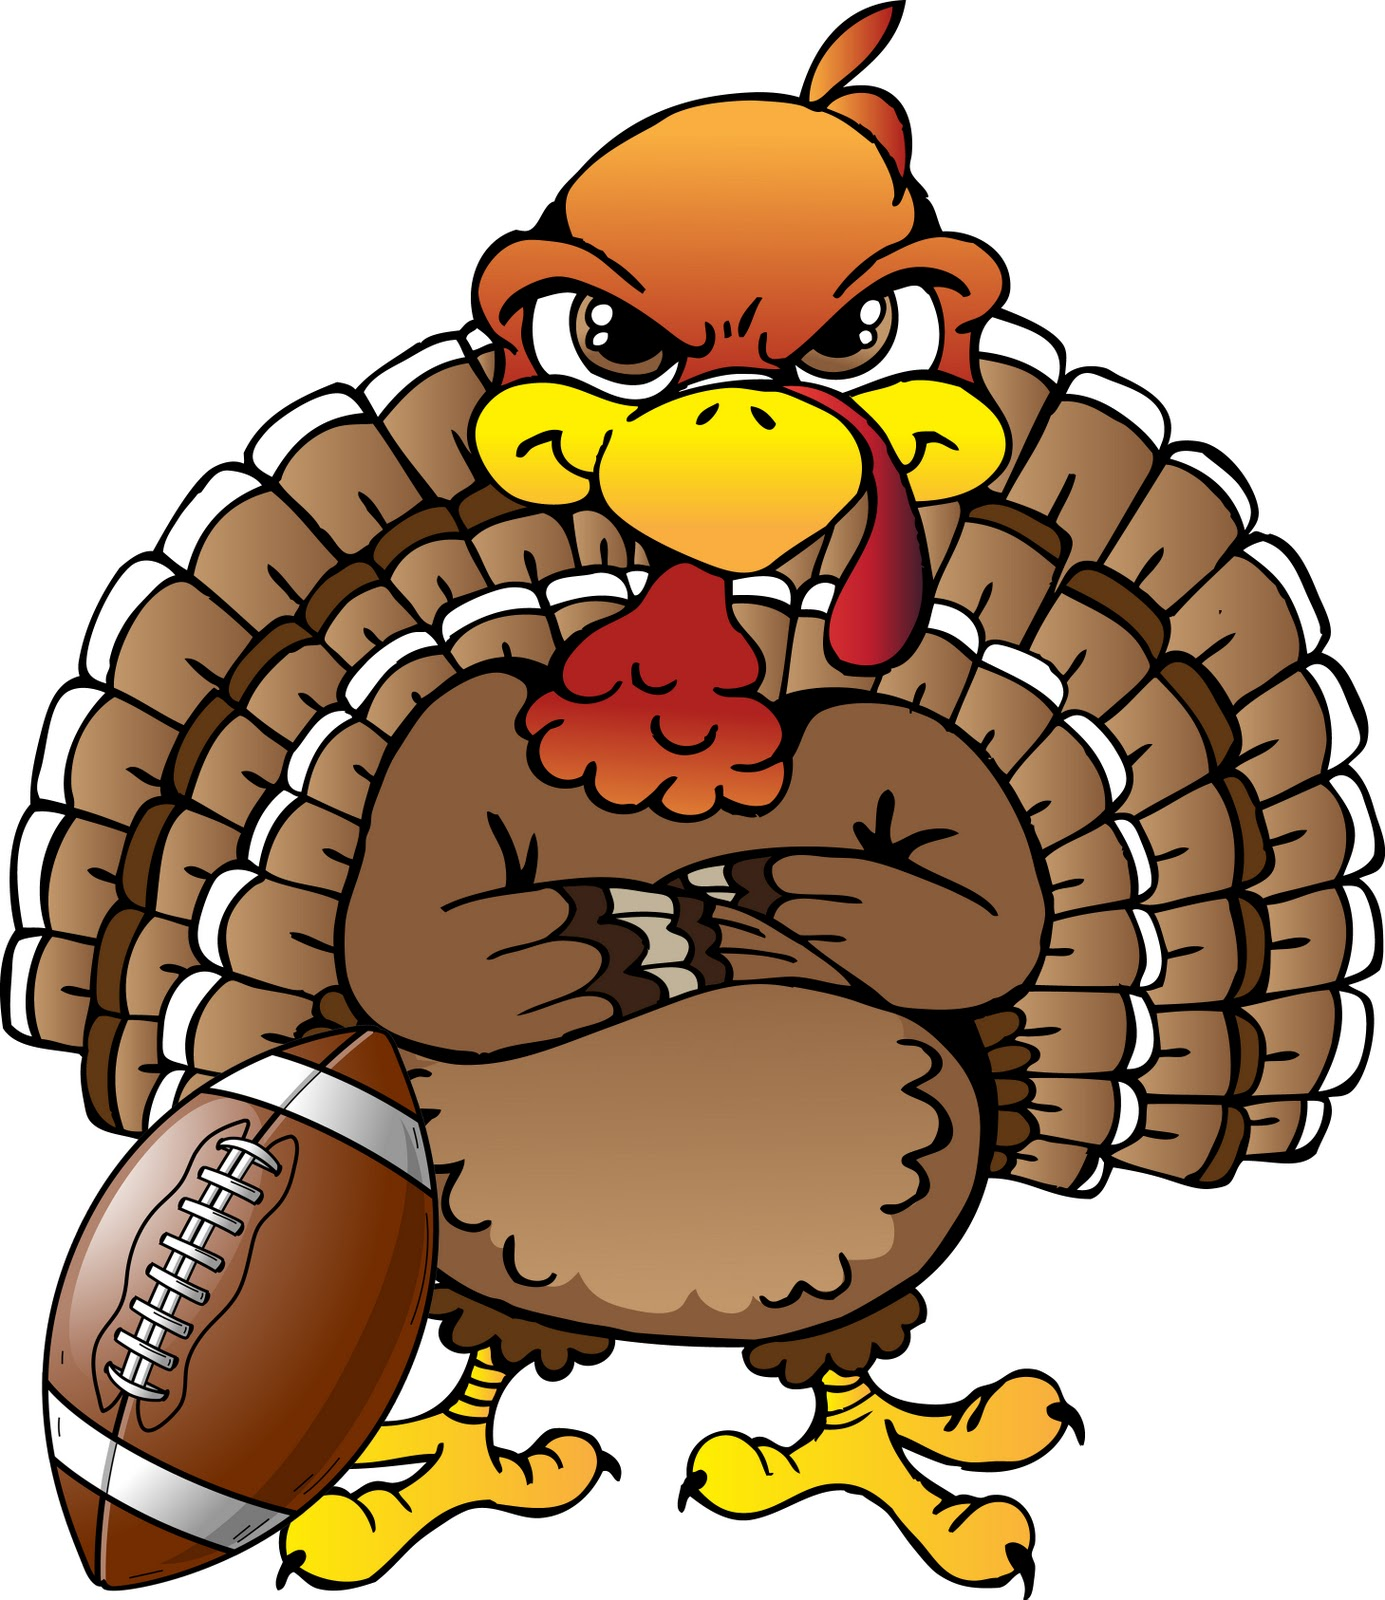 Funny Turkey Clip Art | Funny Thanksgiving Images, wallpaper, Funny Thanksgiving Images hd ... | Art | Pinterest | Very funny, Thanksgiving and Funny ...